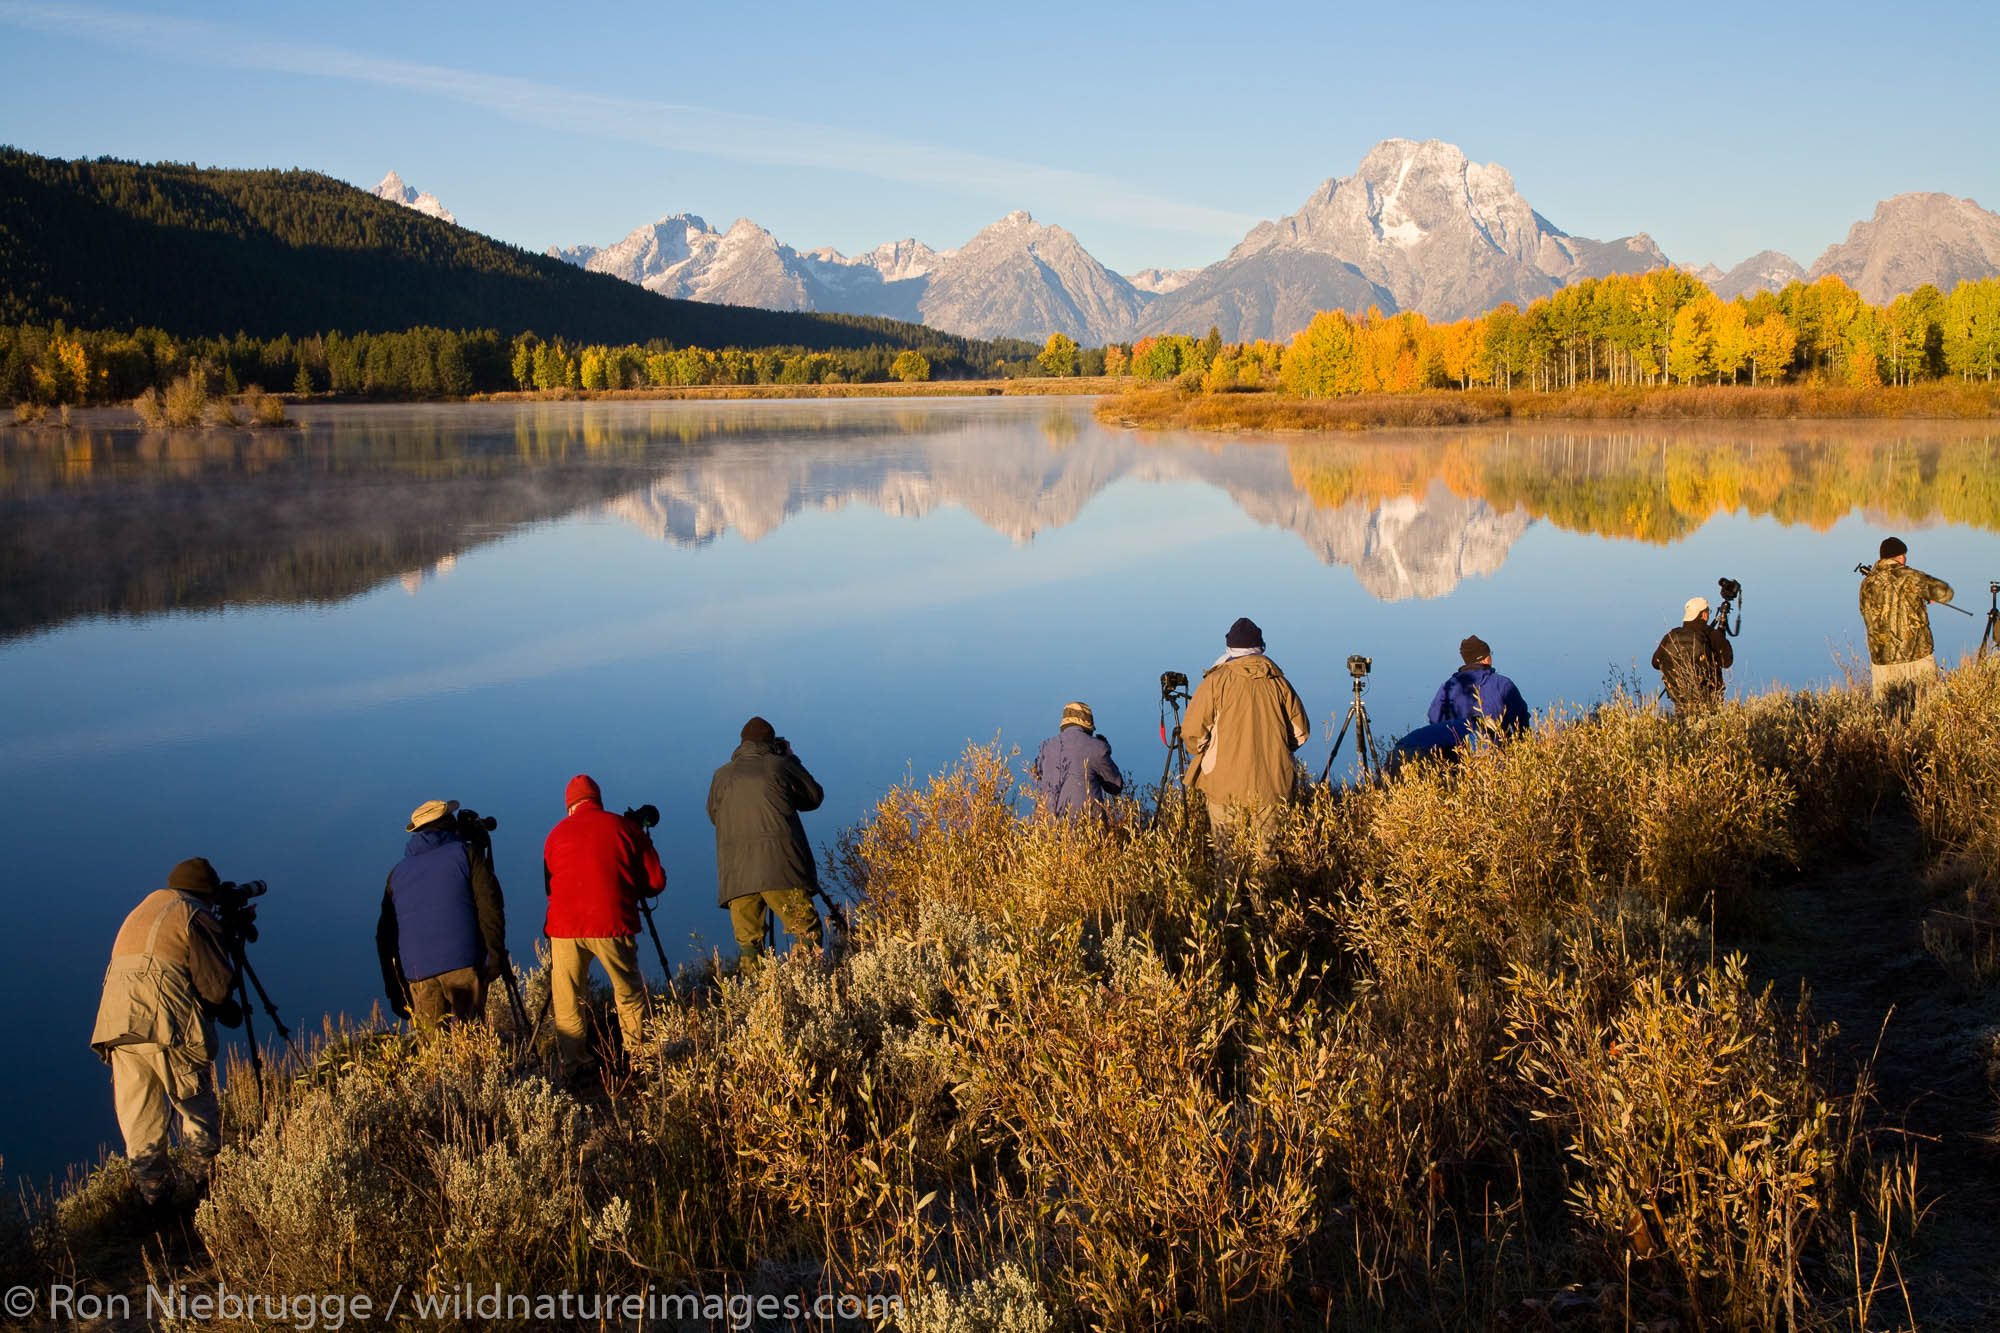 Photographers photographing Mount Moran from Oxbow Bend, Grand Teton National Park, Wyoming.